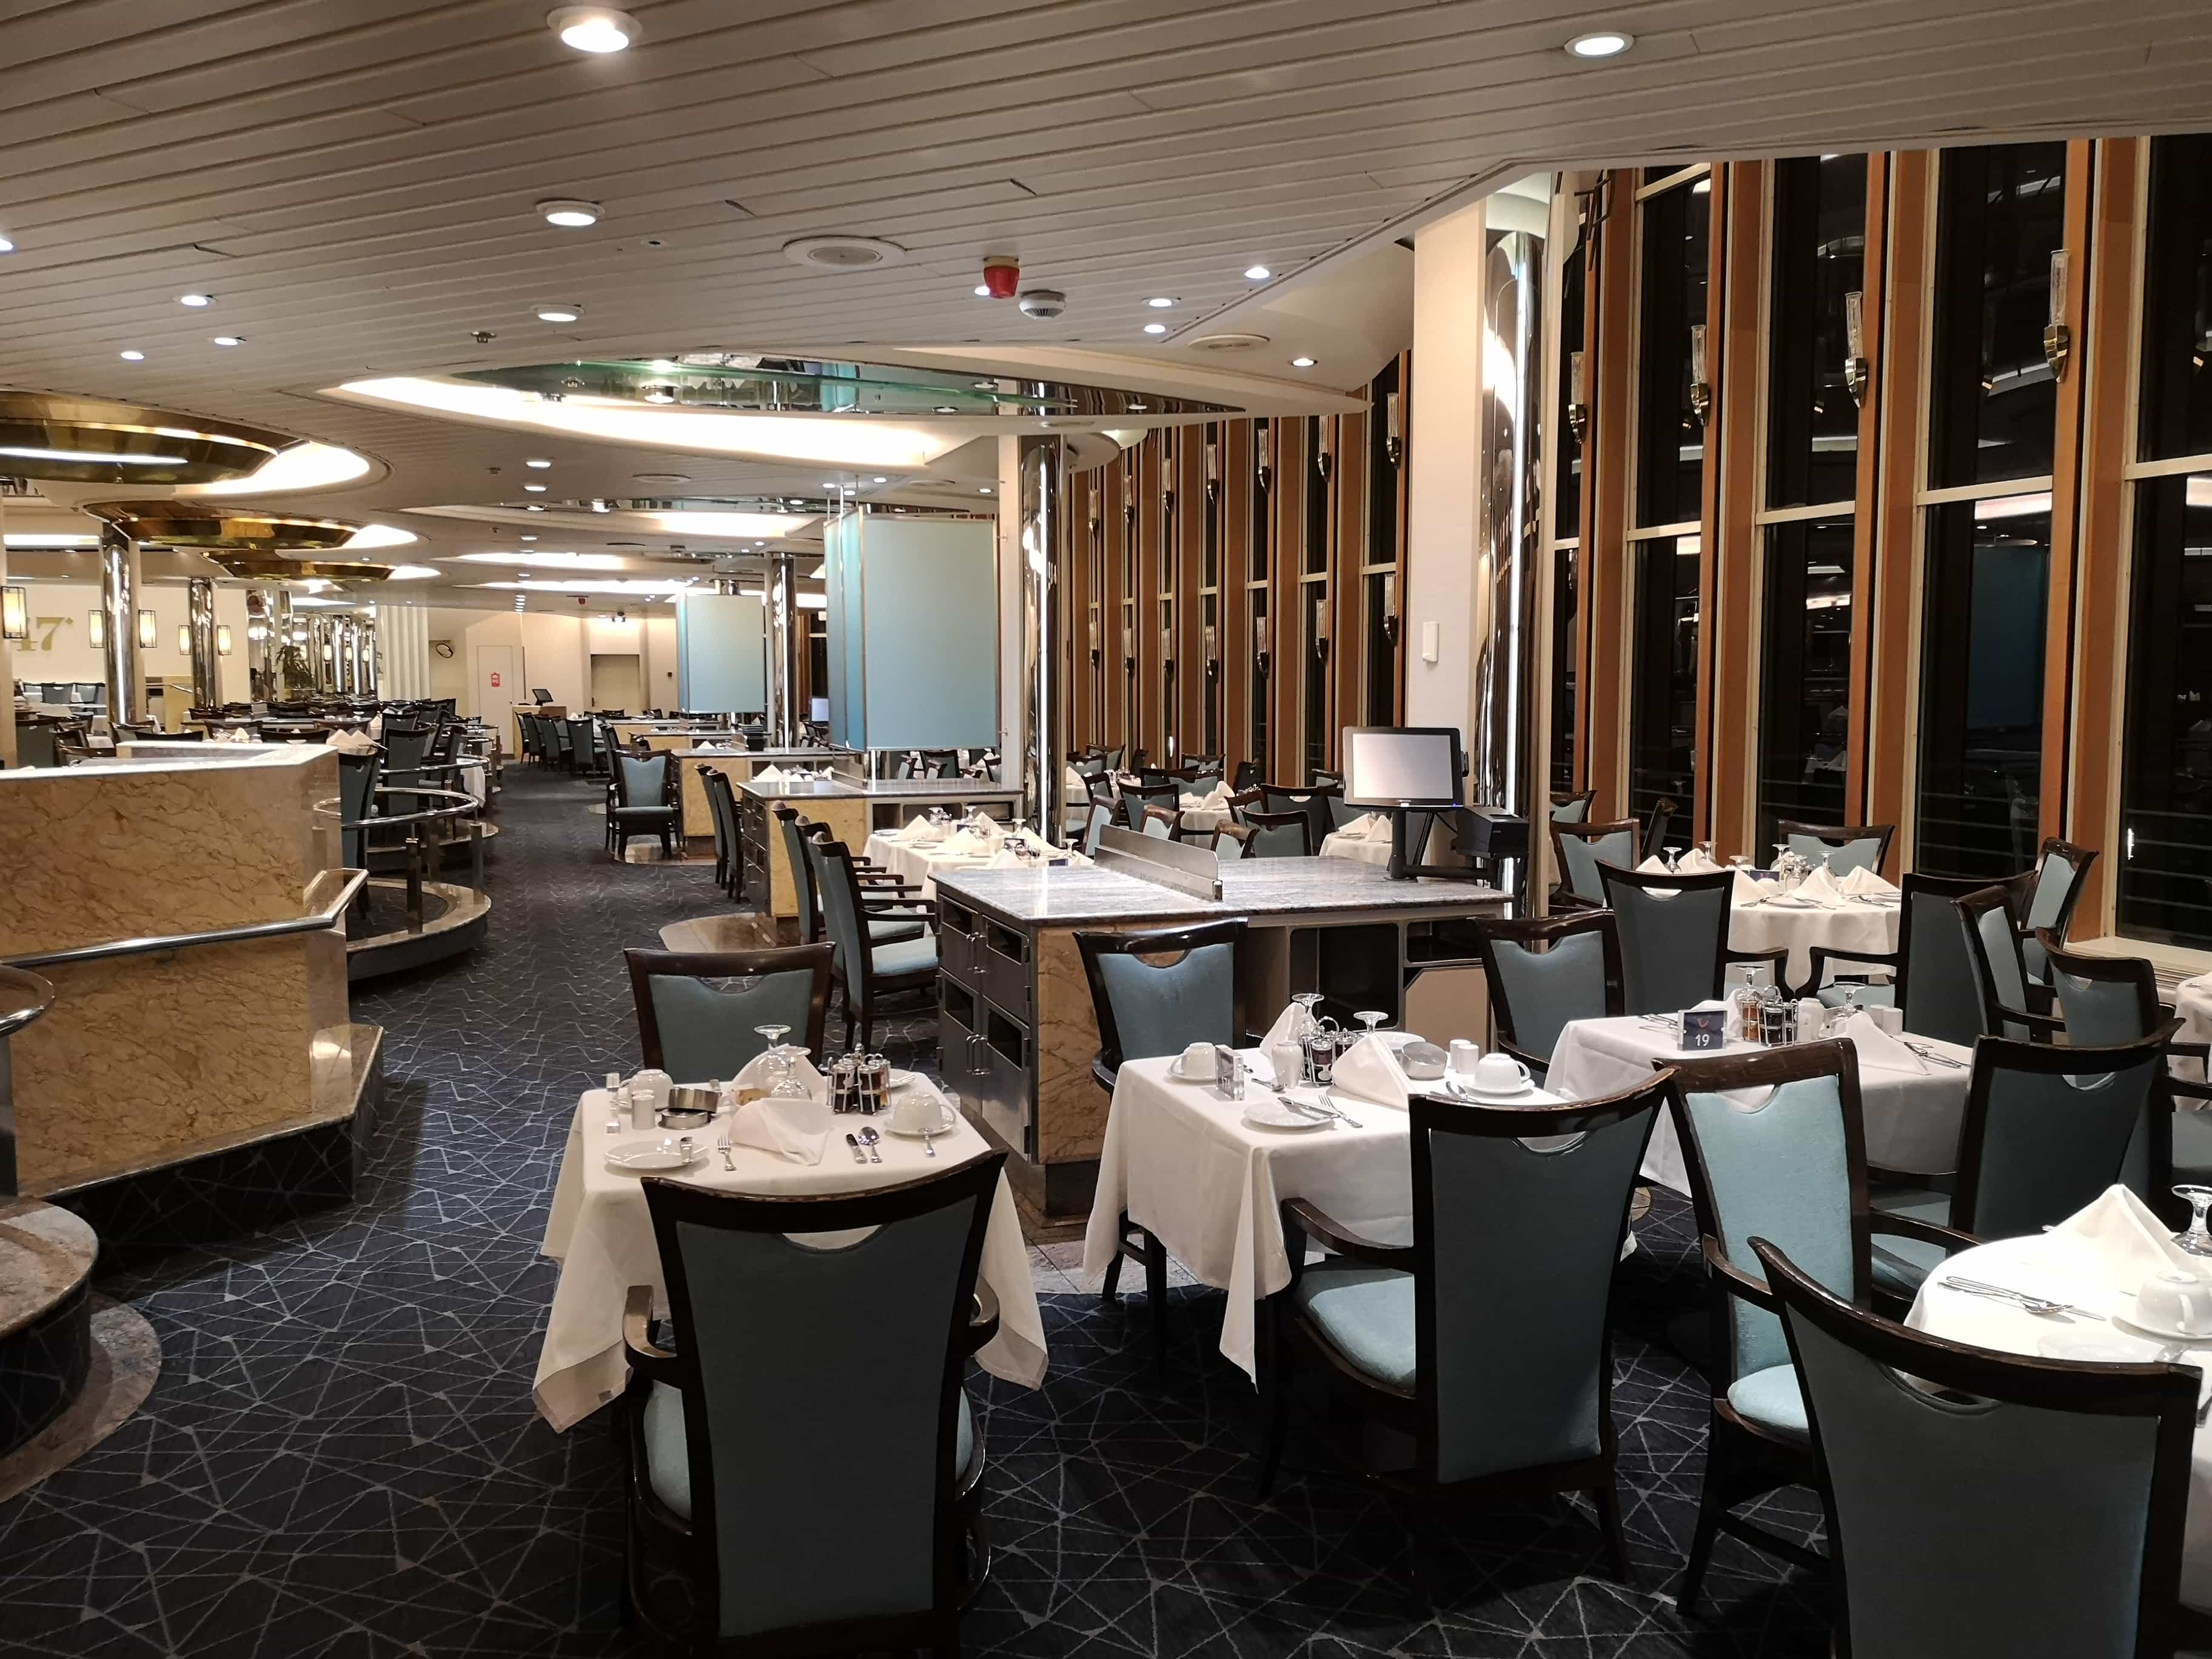 Marella Discovery Main dining room 47 degrees multi level